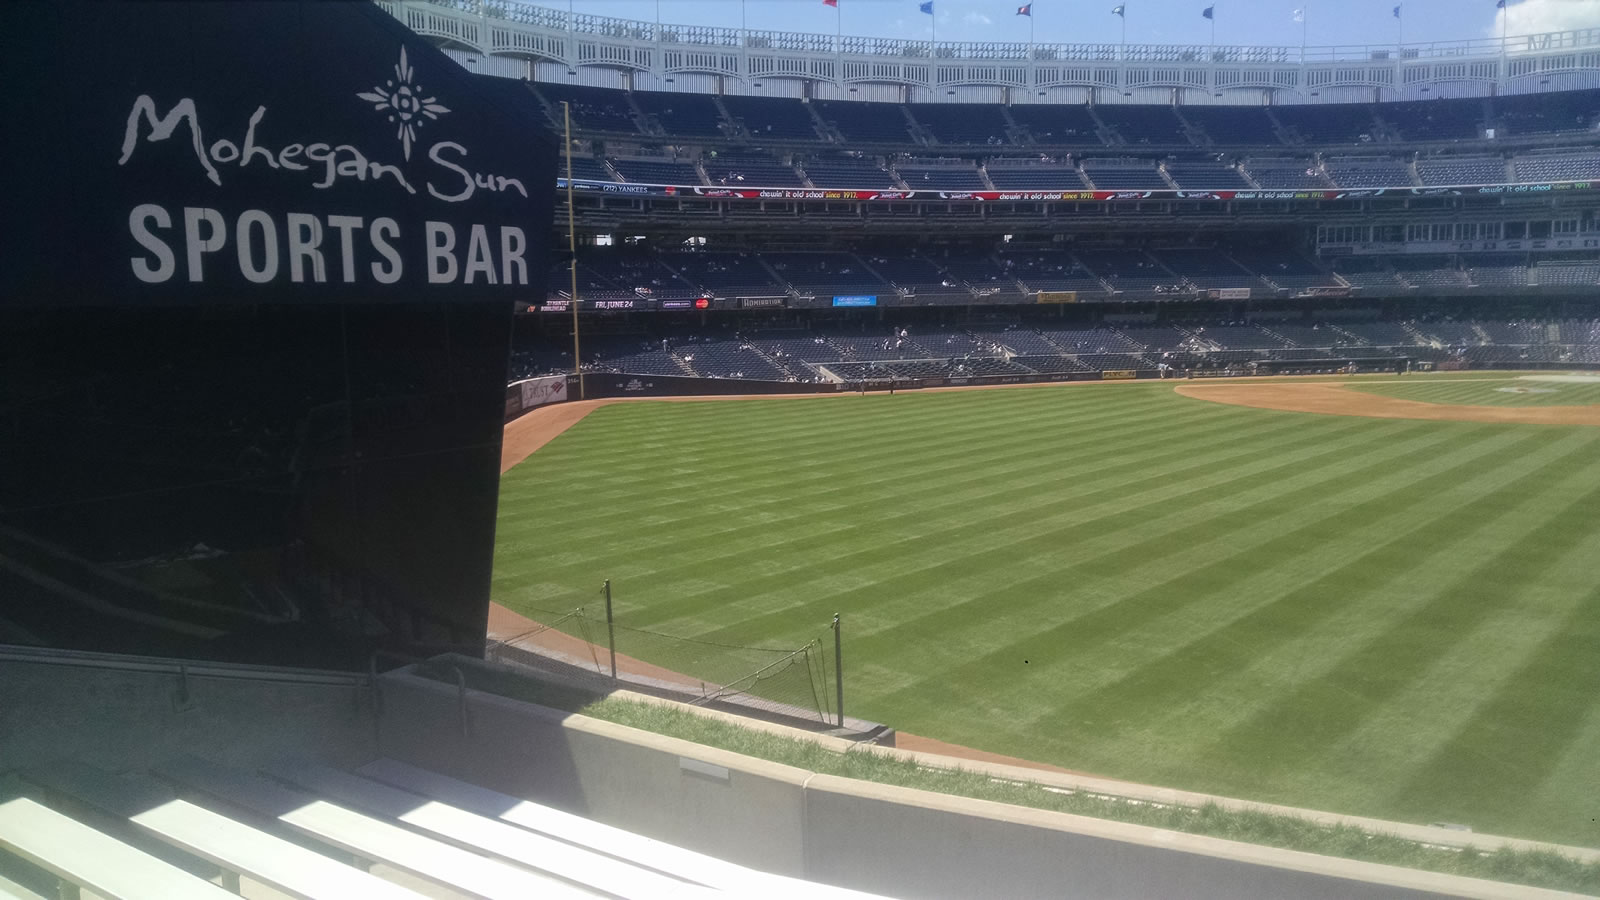 New York Yankees Seat View for Yankee Stadium Section 239, Row 9, Seat 9